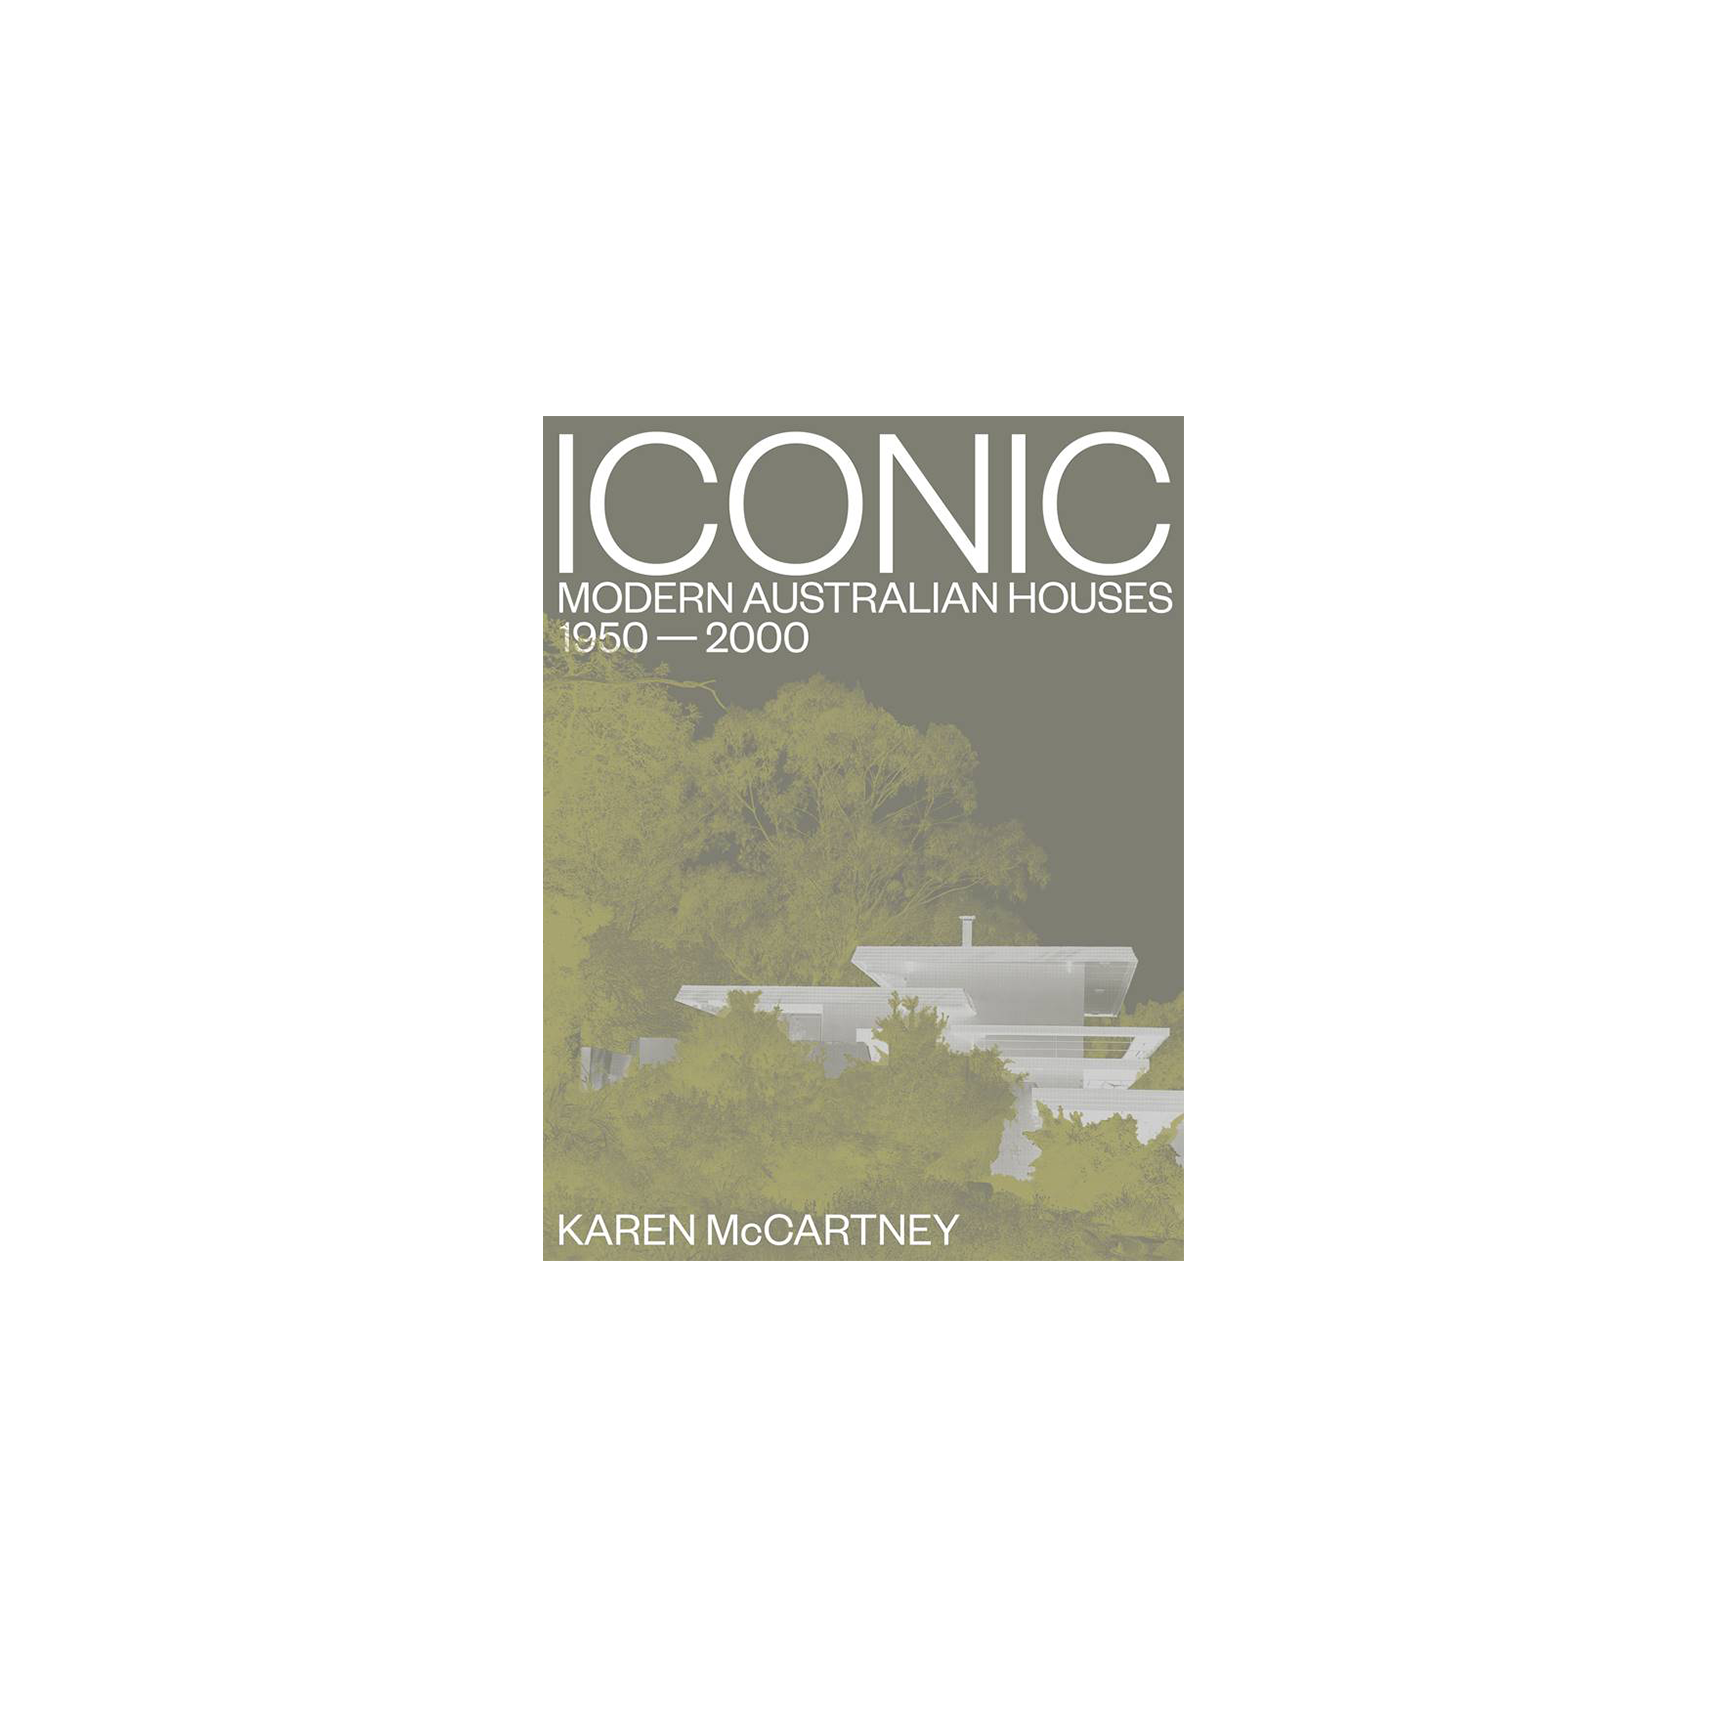 Iconic Modern Australian Houses 1950-2000 by Karen McCartney